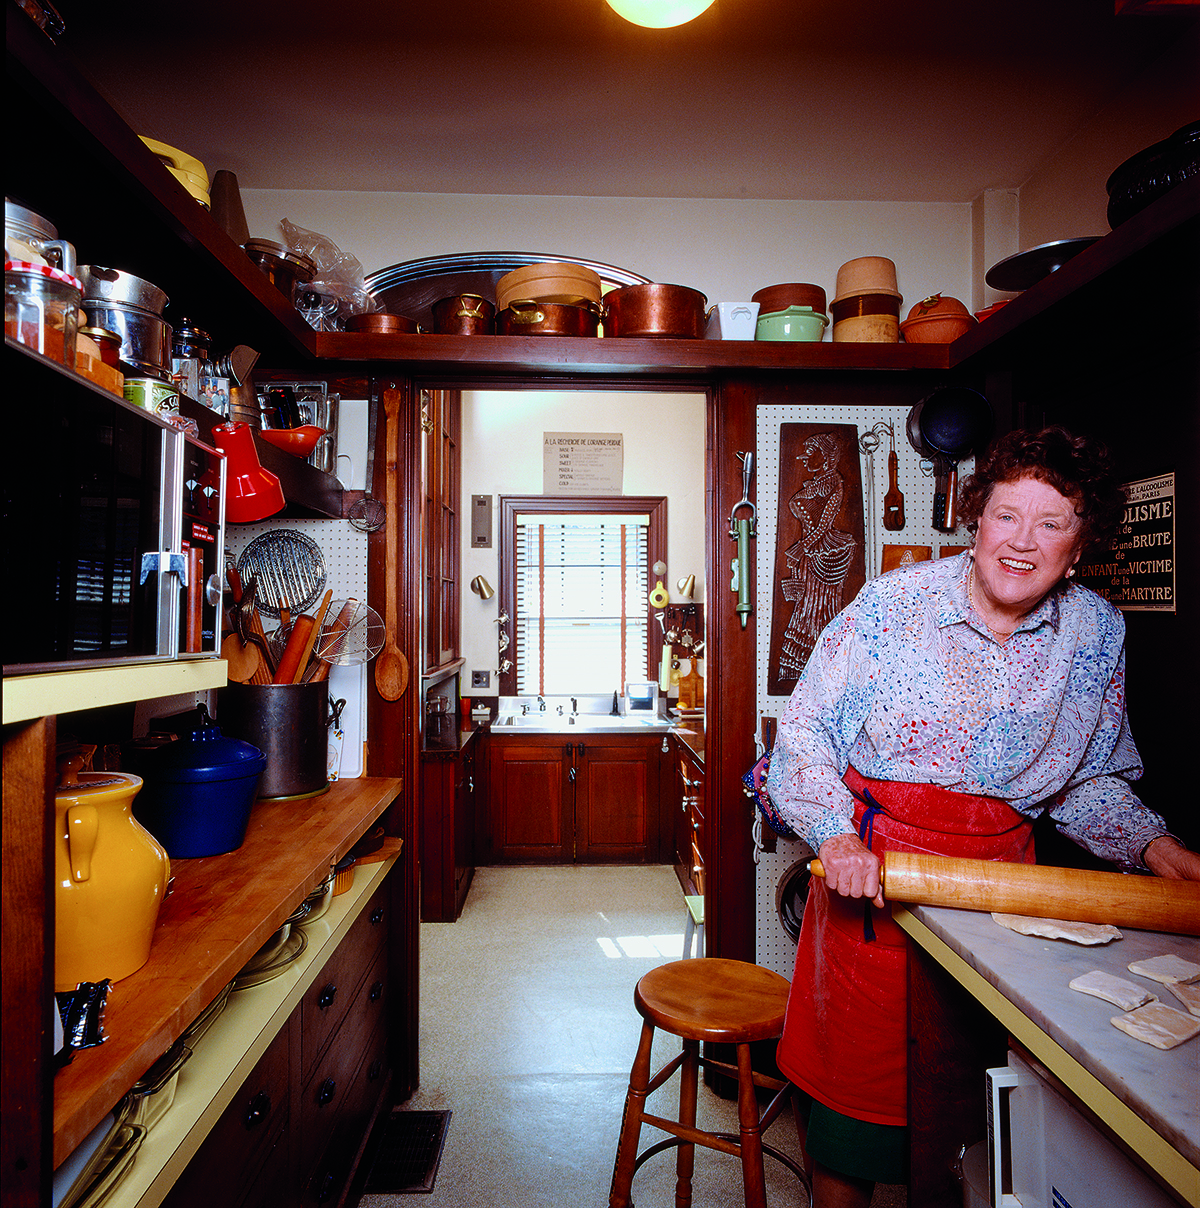 Julia Child rolling pastry in one of her Cambridge pantries. / Image from In Julia's Kitchen: Practical and Convivial Kitchen Design Inspired by Julia Child, by Pamela Heyne and Jim Scherer published by ForeEdge, an imprint of University Press of New England.